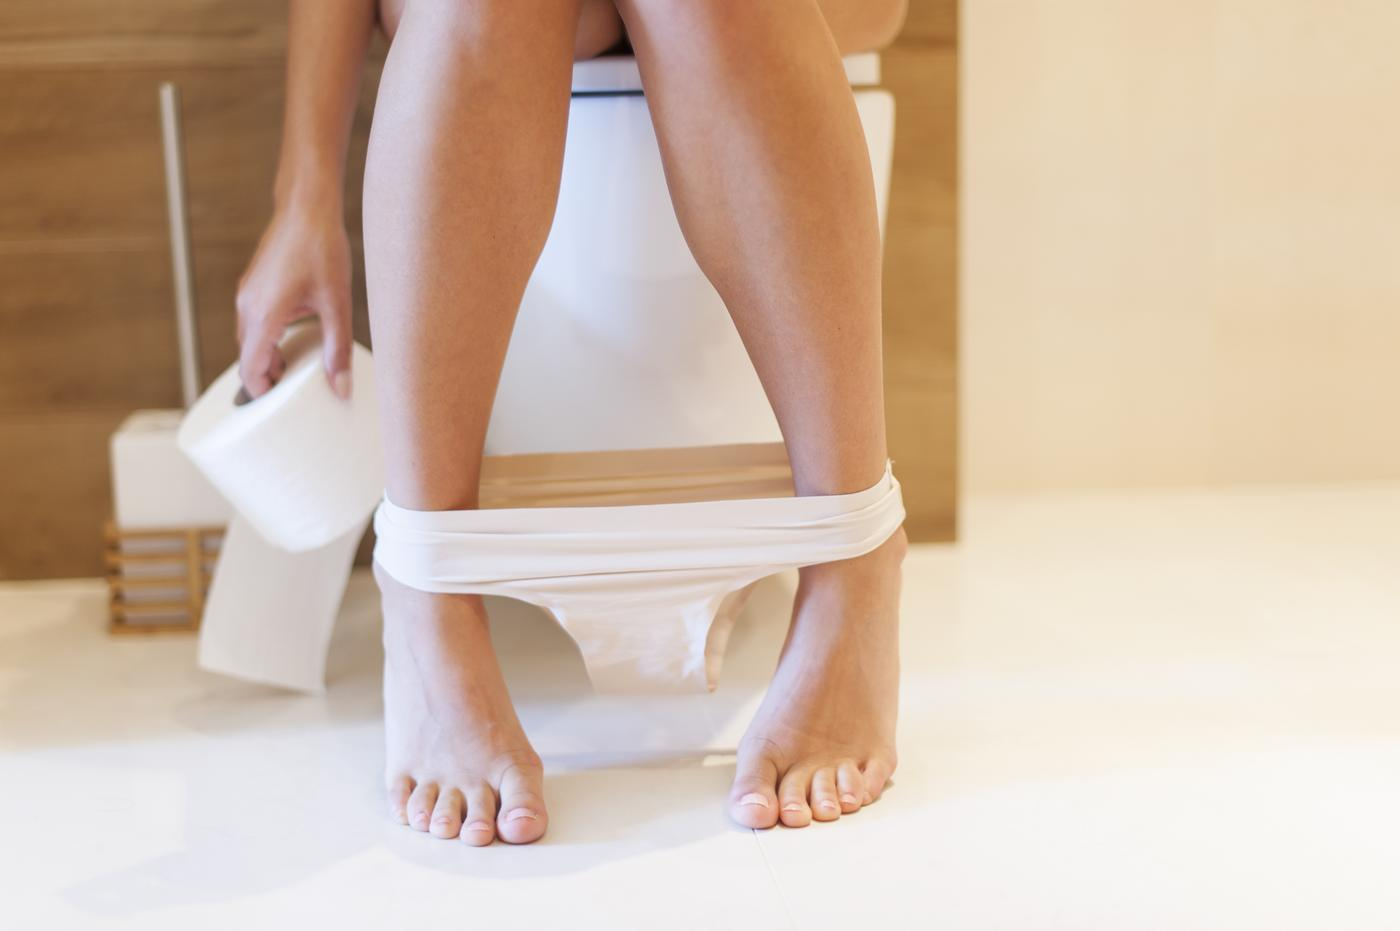 Woman sat on toilet